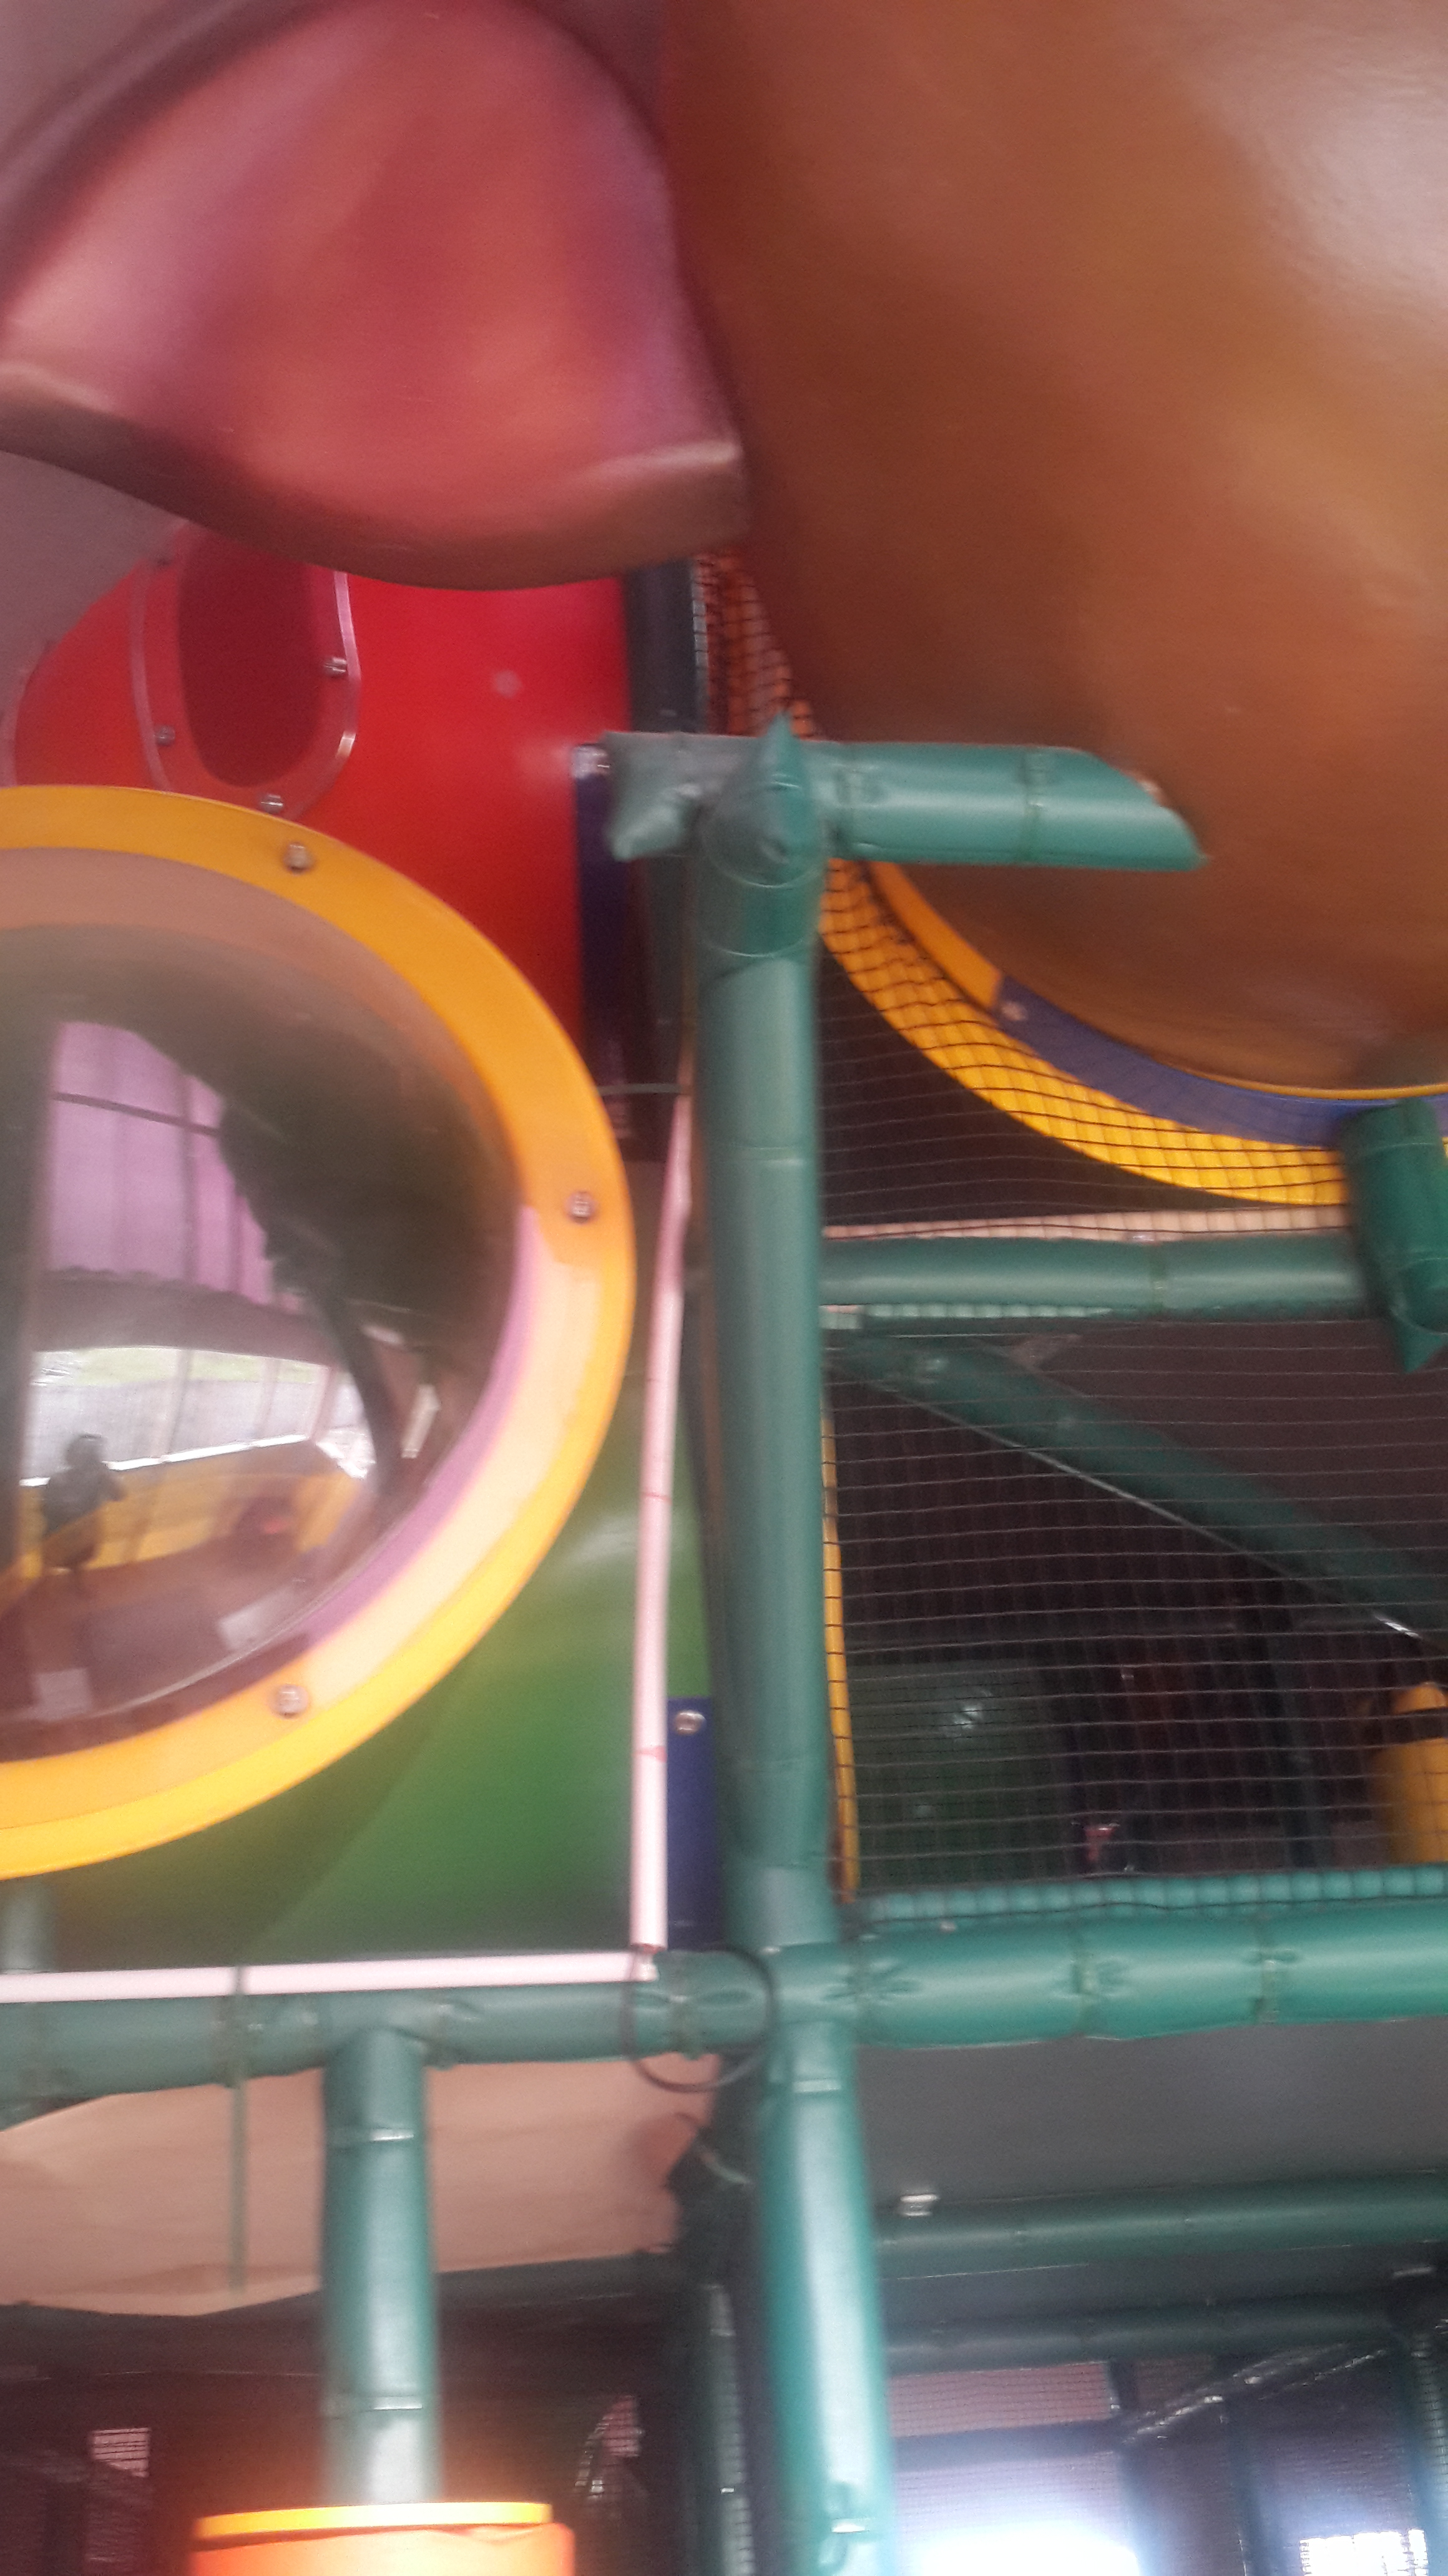 Hard to get pictures but a lot of great climbing equipment and slides for older children